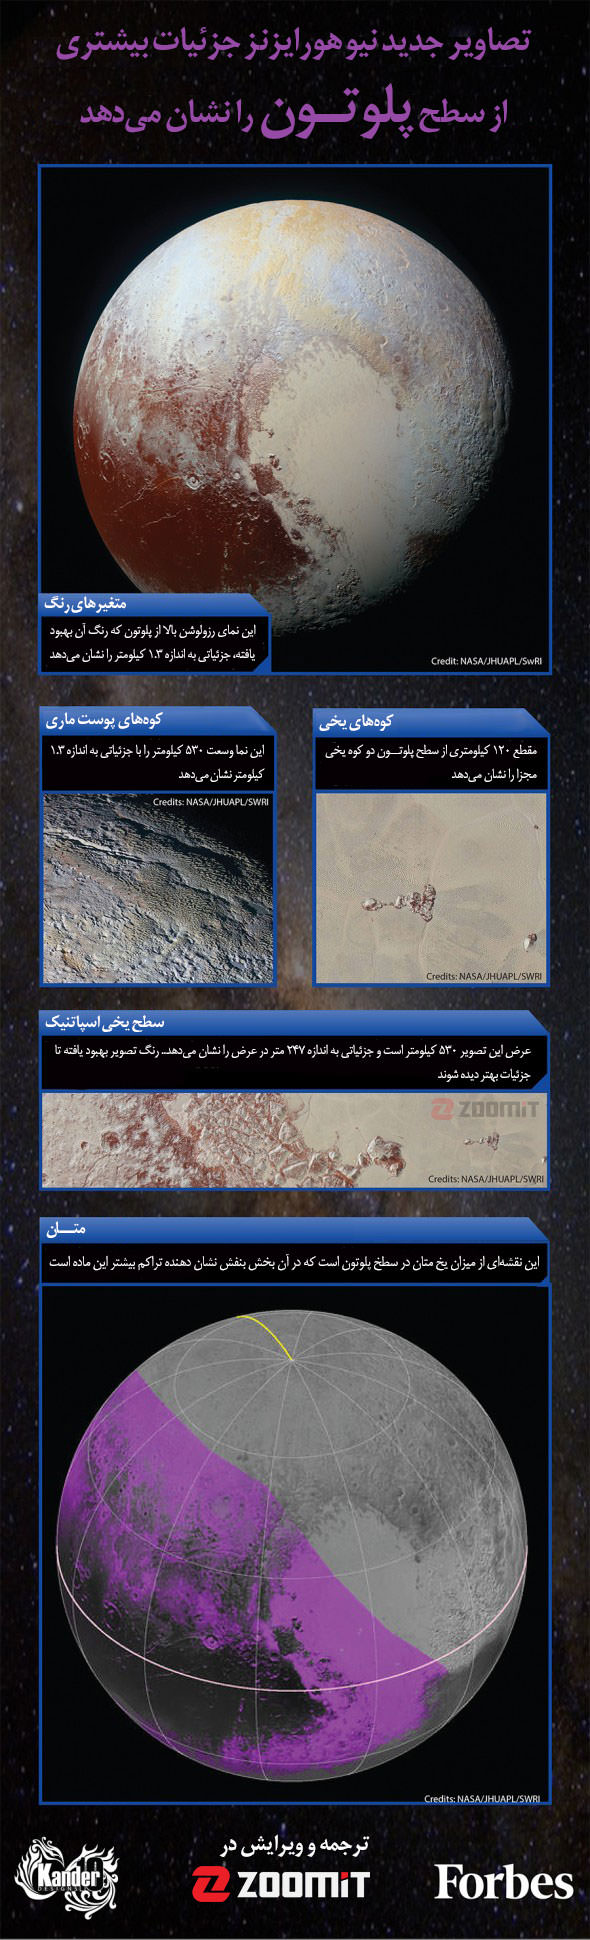 pluto images infographic